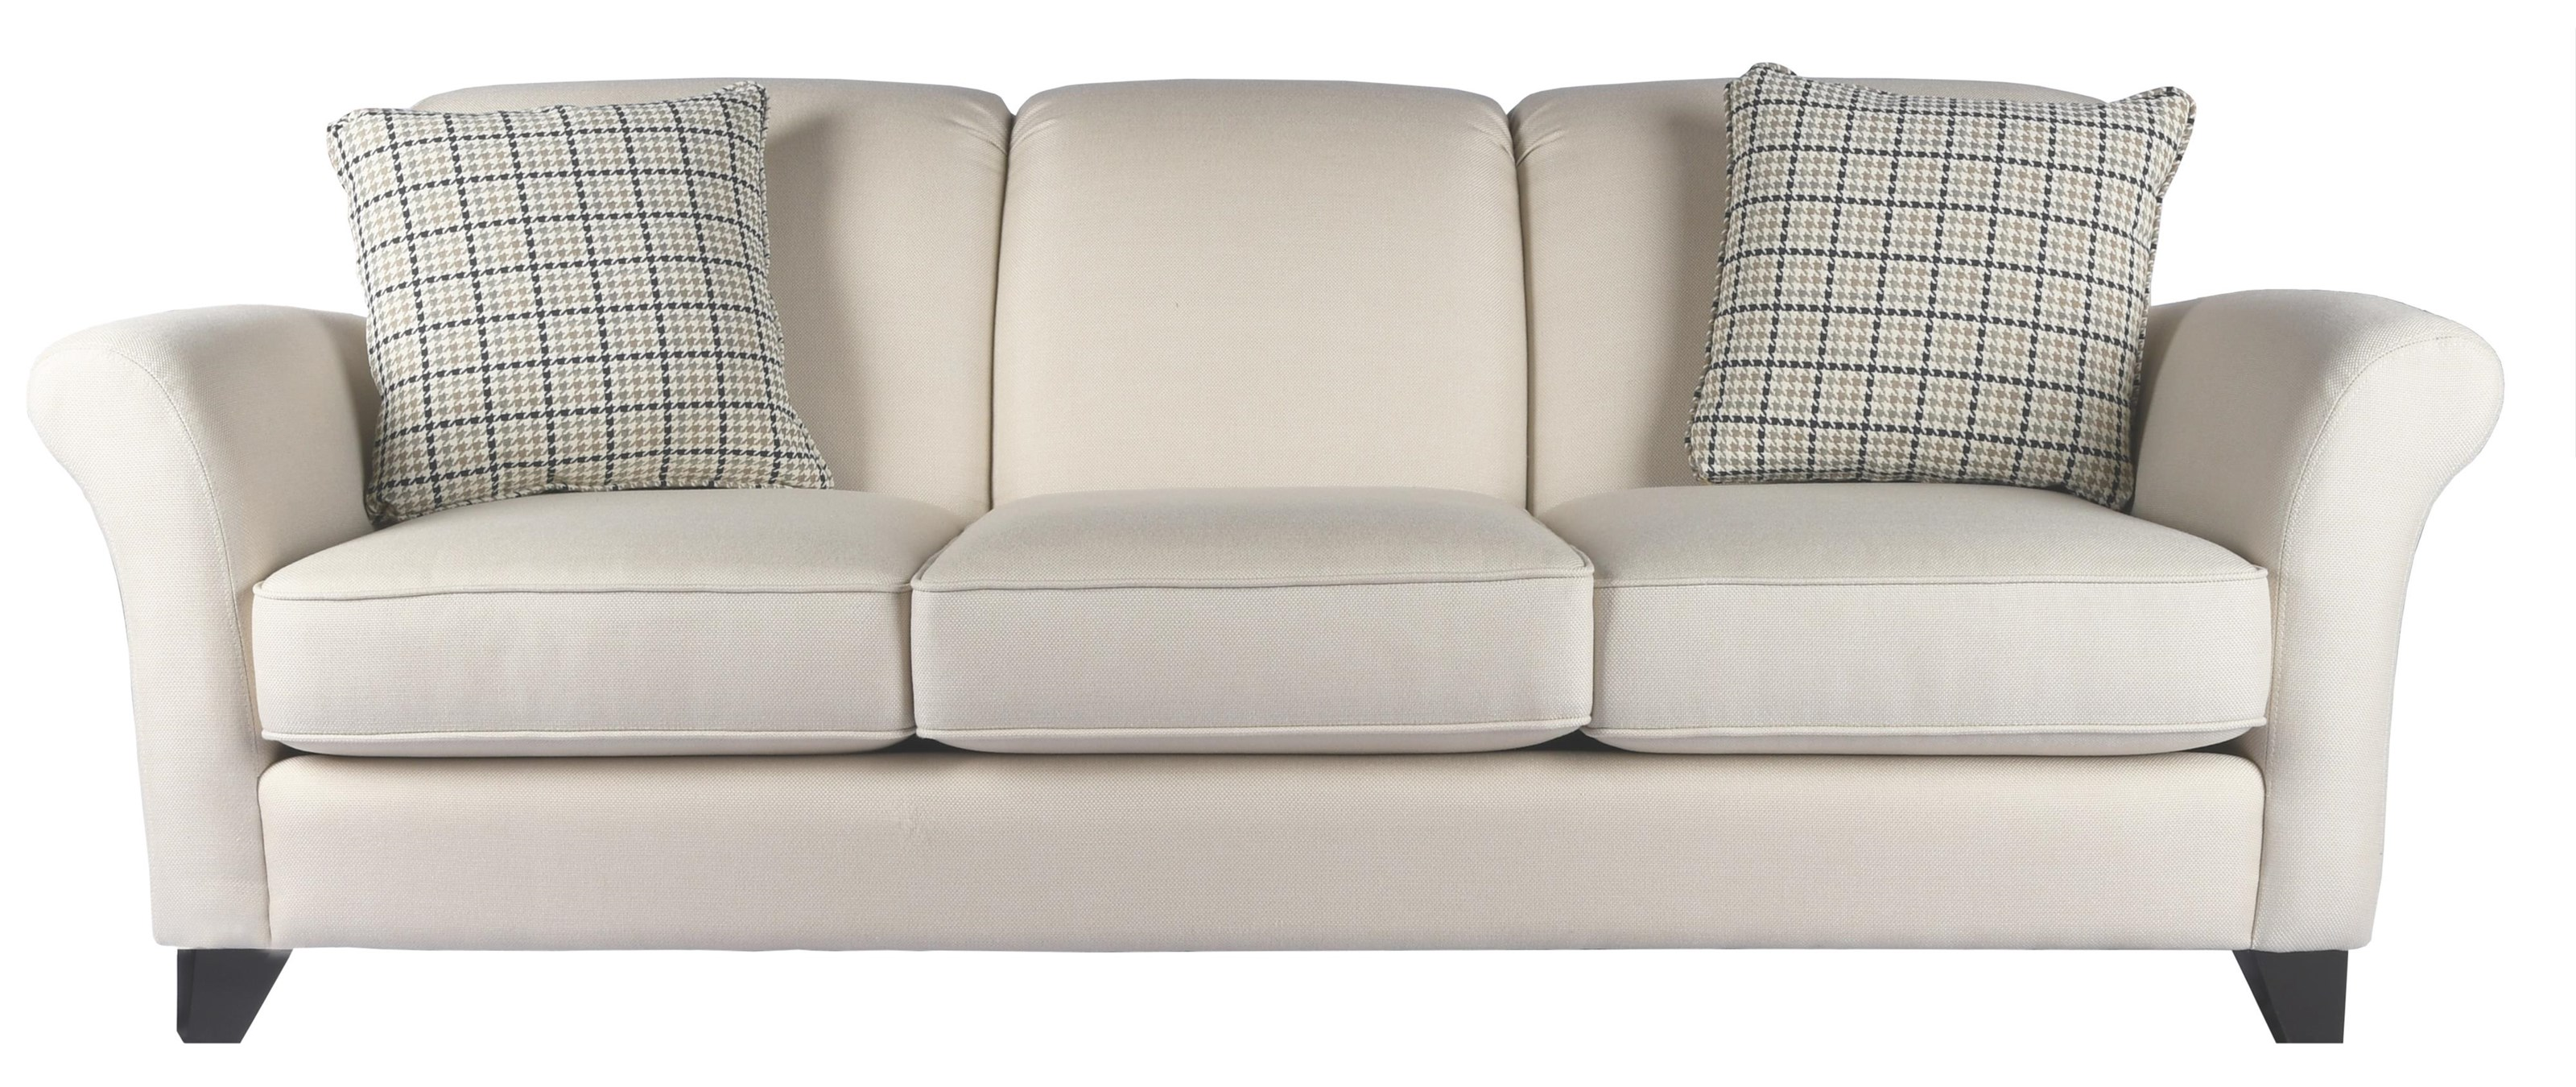 Beckett Sofa by Taelor Designs at Bennett's Furniture and Mattresses